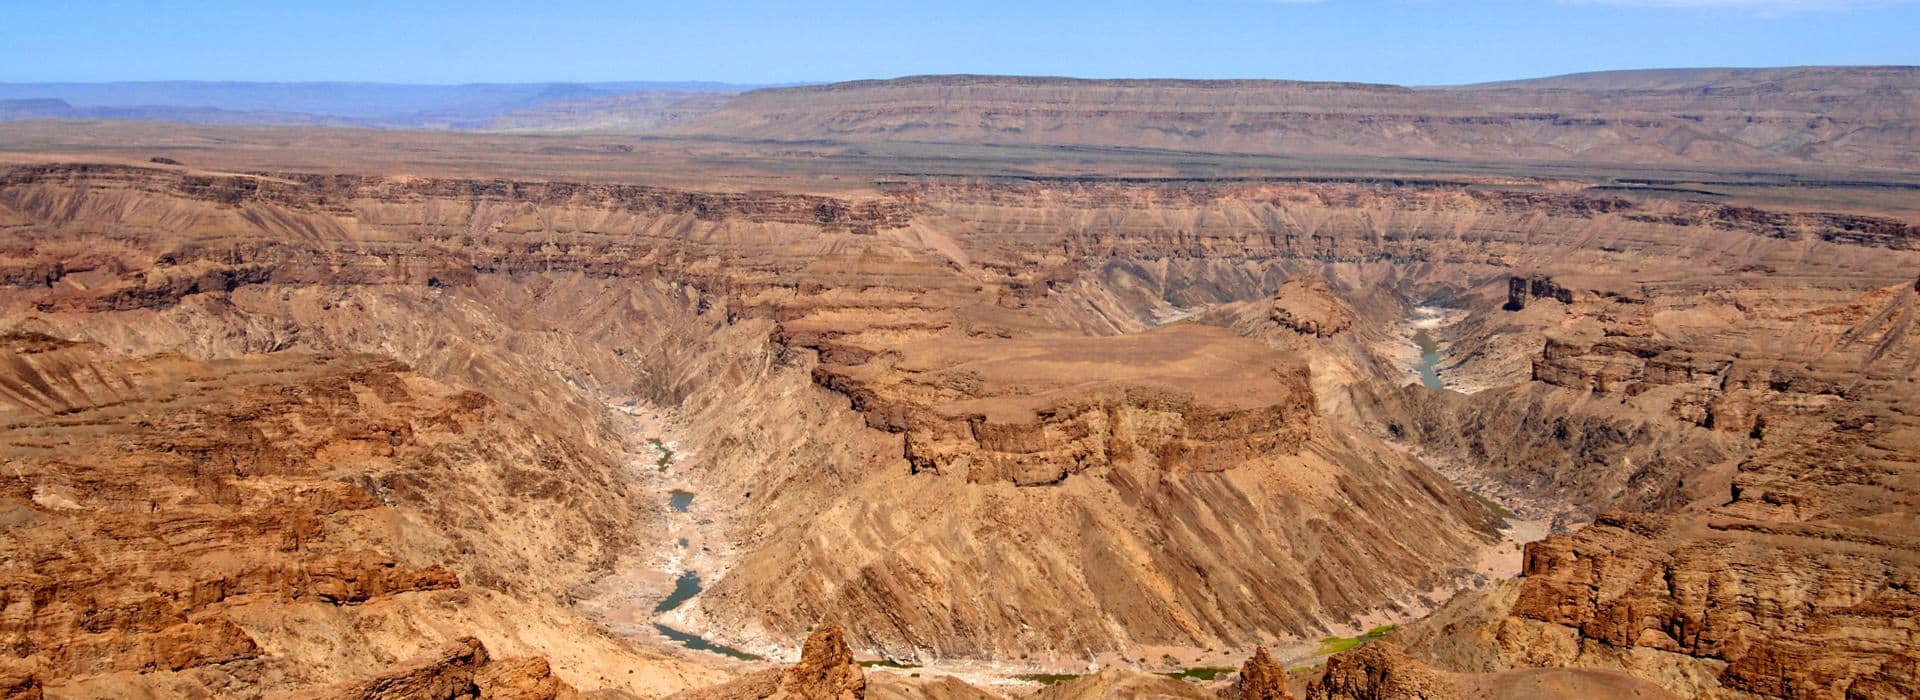 Namibia-fish-river-canyon-slider